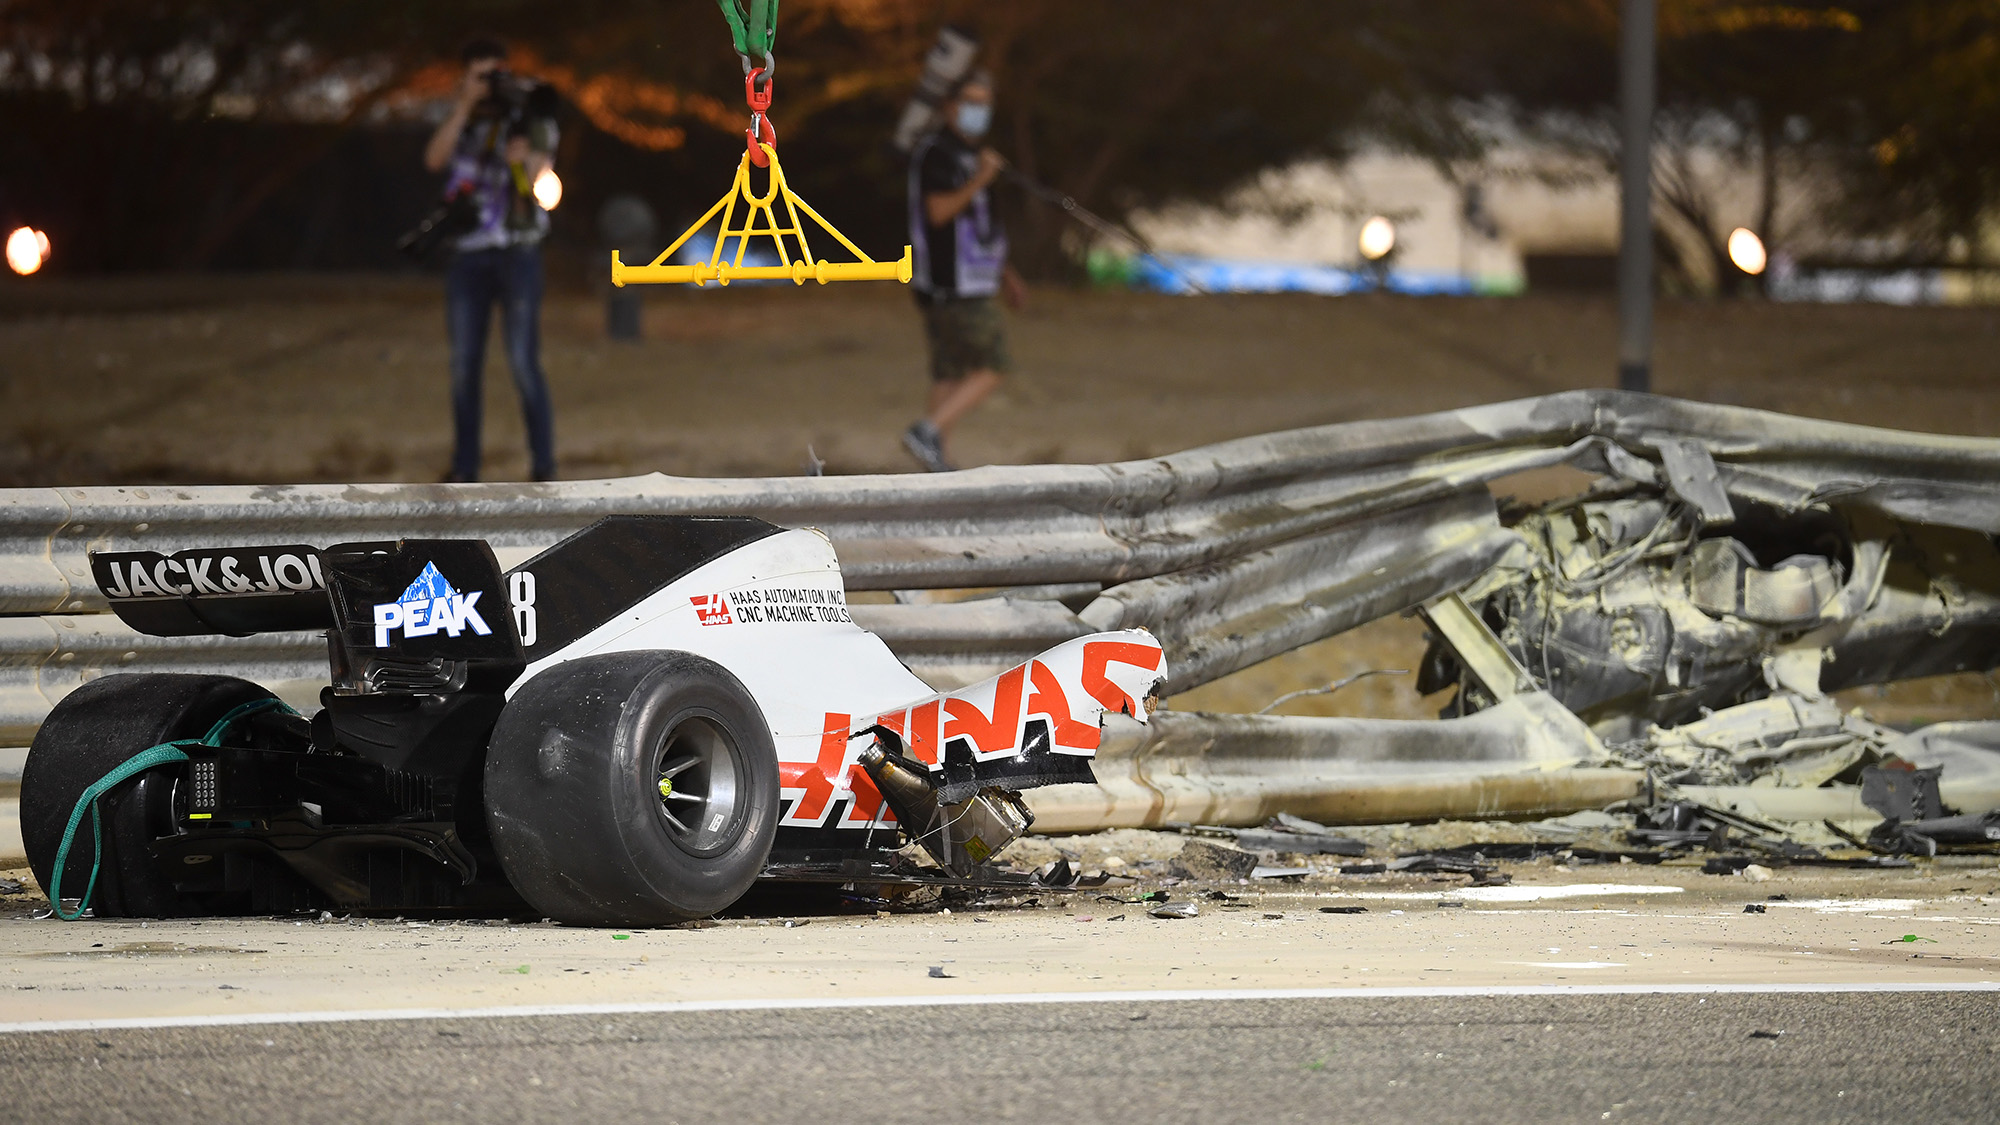 The wreckage of Romain Grosjean's Haas at the 2020 f1 Bahrain Grand prix